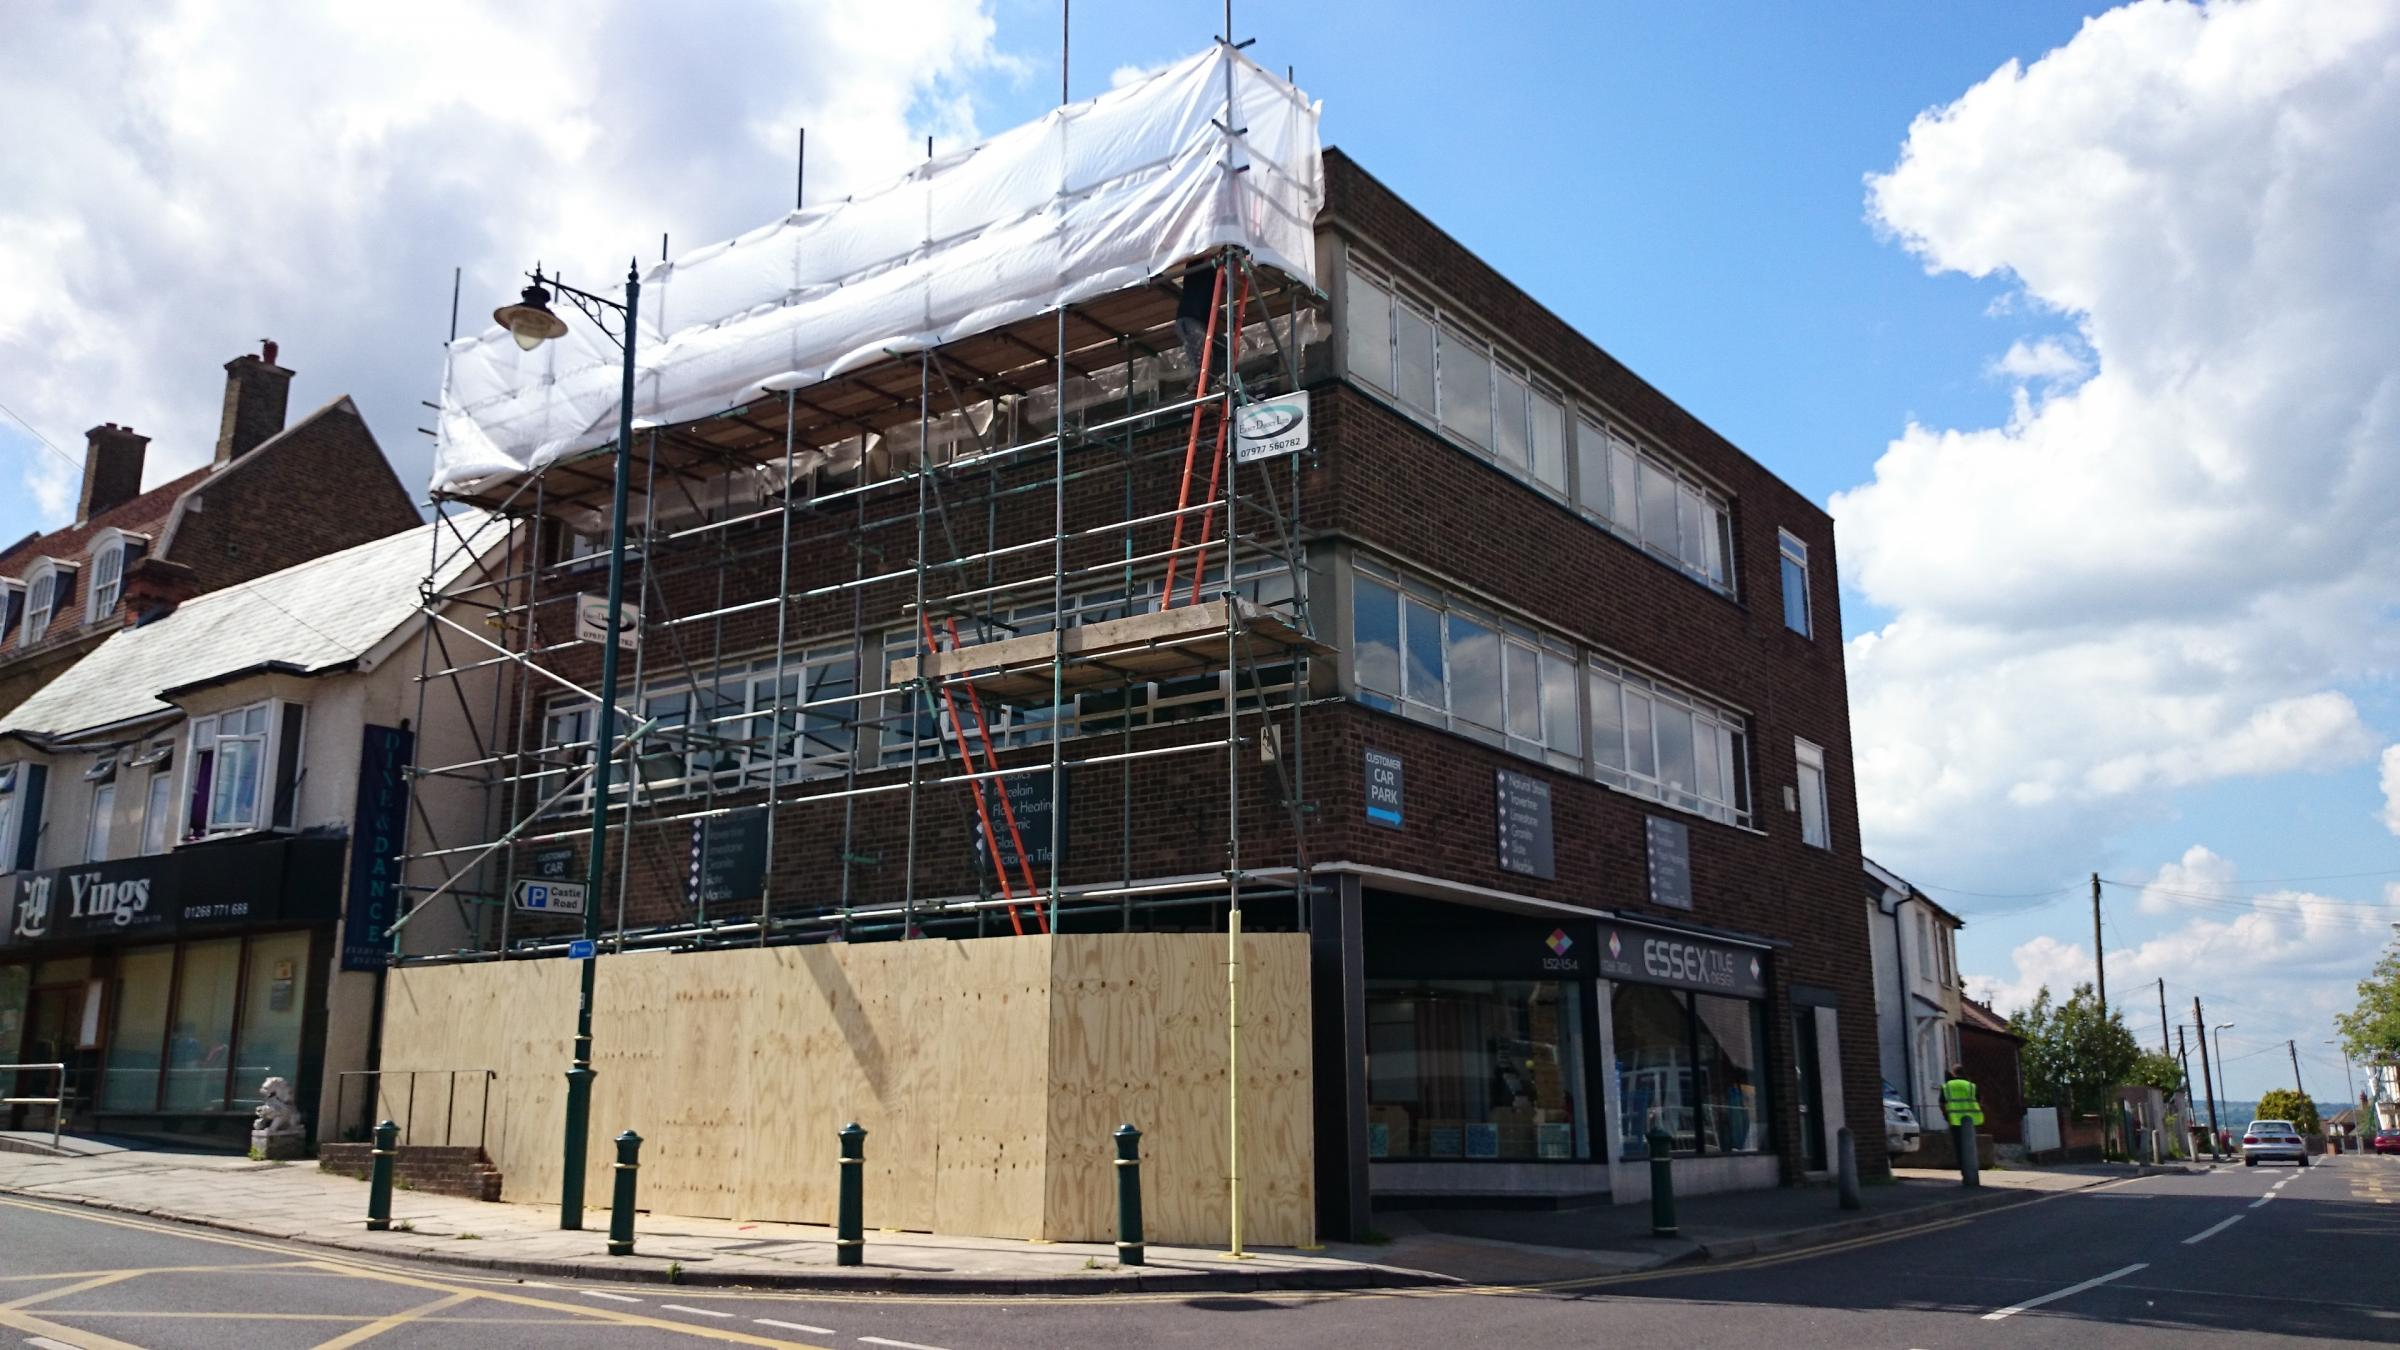 Scaffolding and boarding has been put up outside the building in Rayleigh High Street to make it safe. Pic: Al Underwood